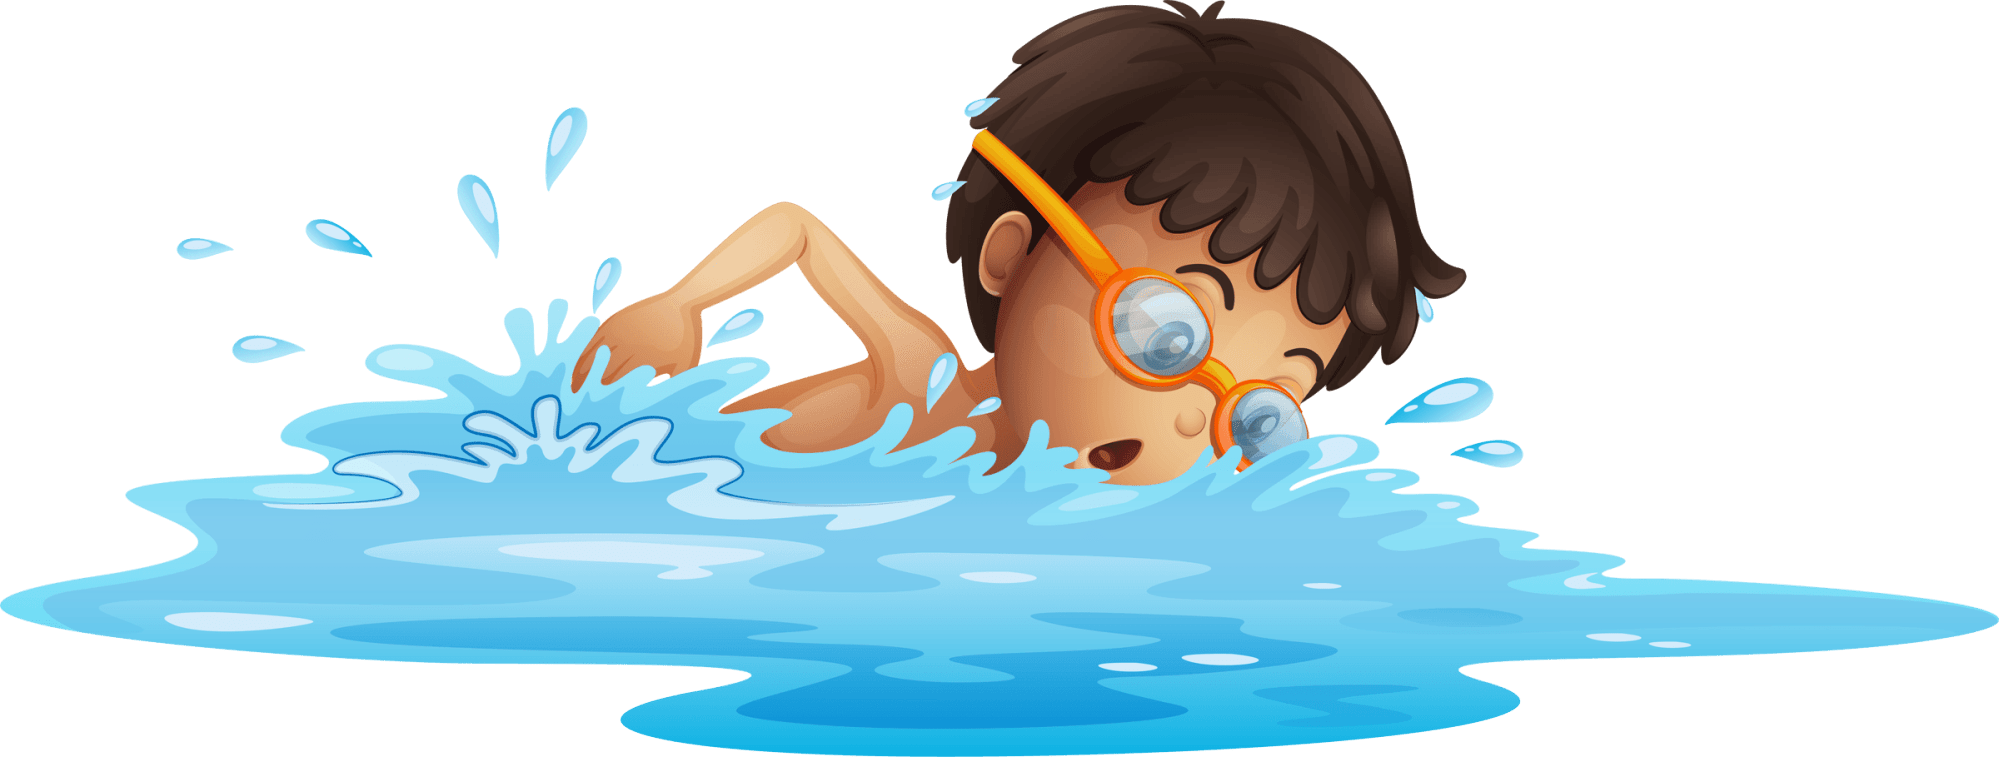 hight resolution of swim clipart swiming copmanthorpe sink or help